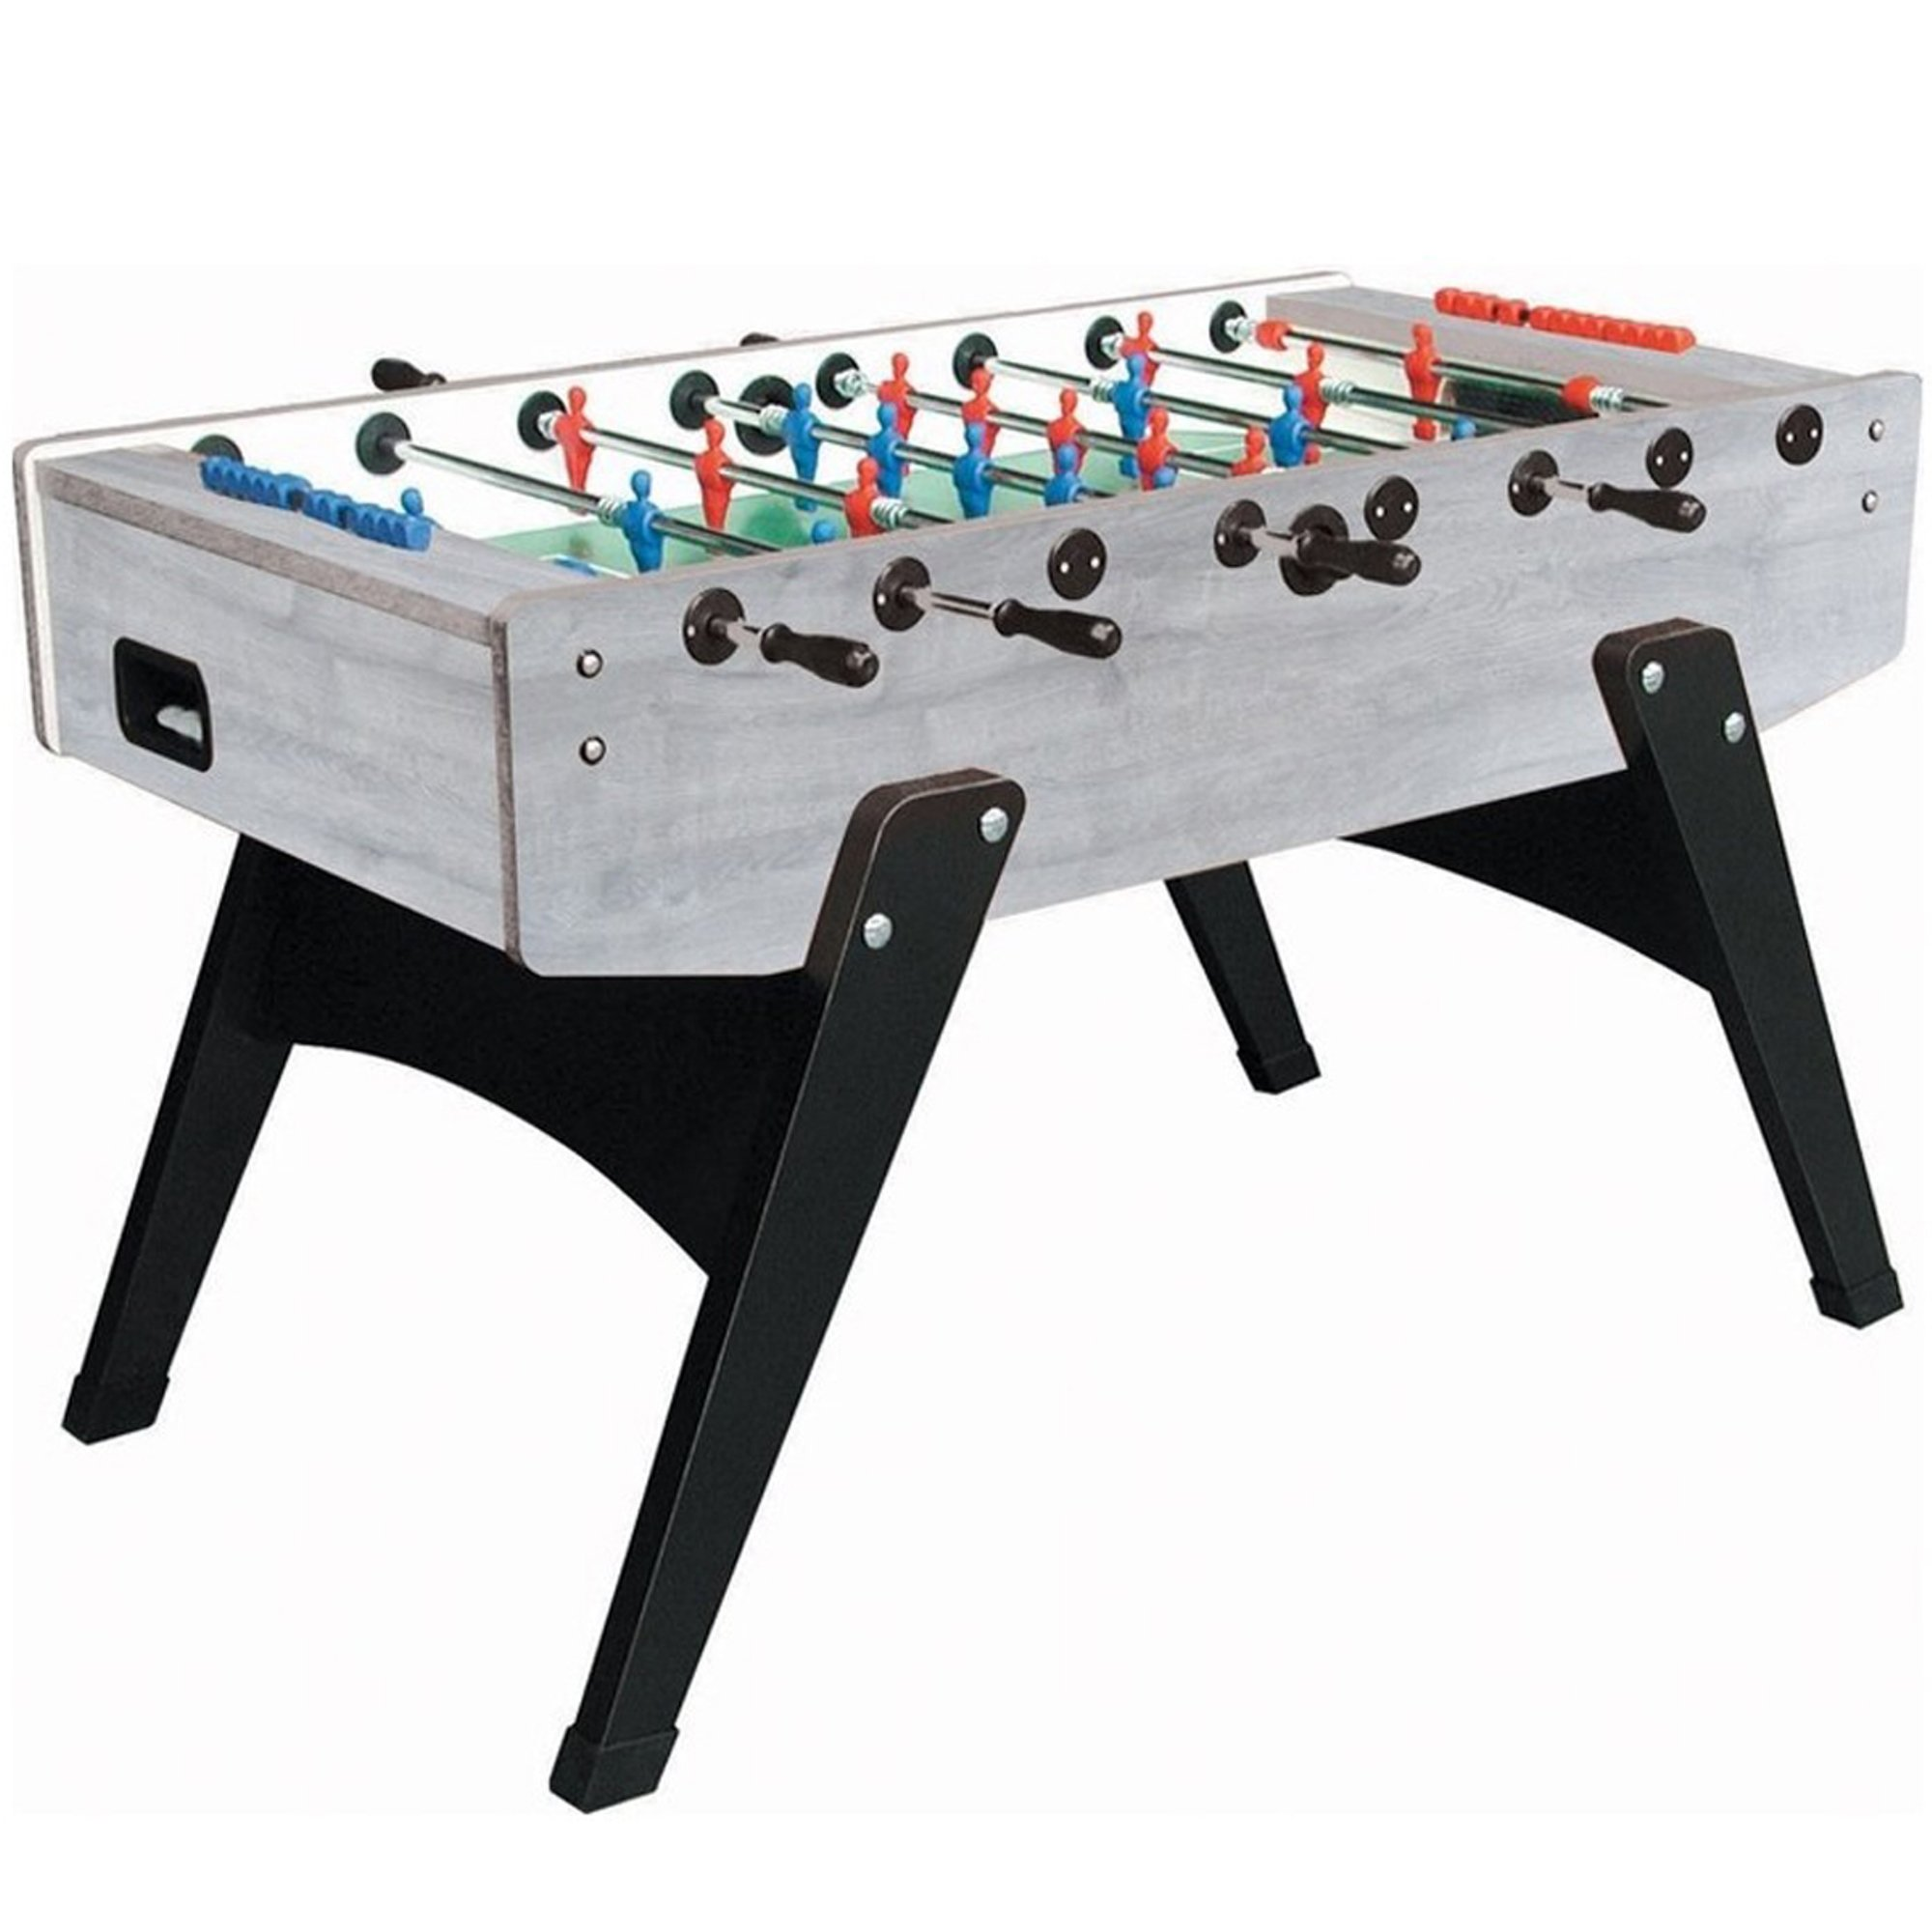 Garlando G-2000 Grey Oak Foosball Table with Telescopic Steel Bars, Ergonomic Handles, Abacus Scorers and 10 Standard Balls by Garlando